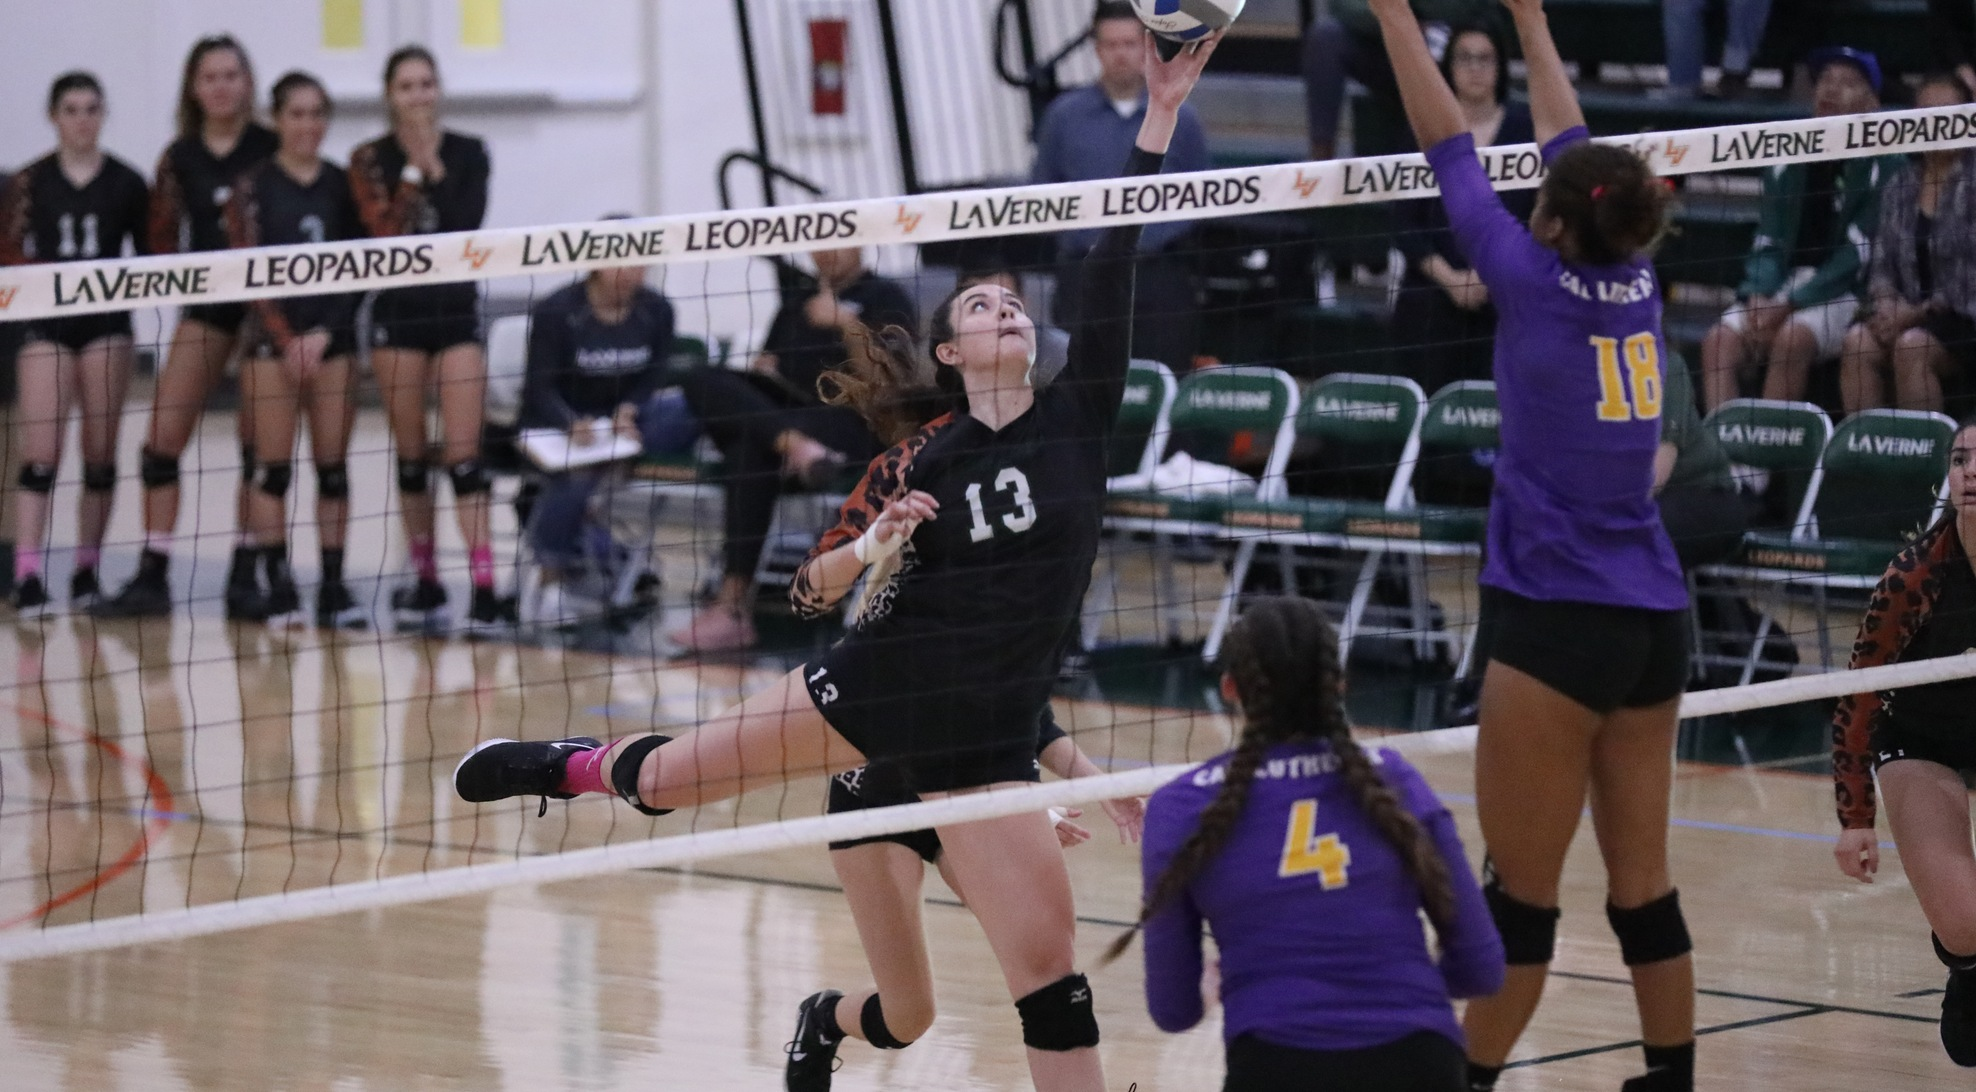 Leopards fall after wild third set